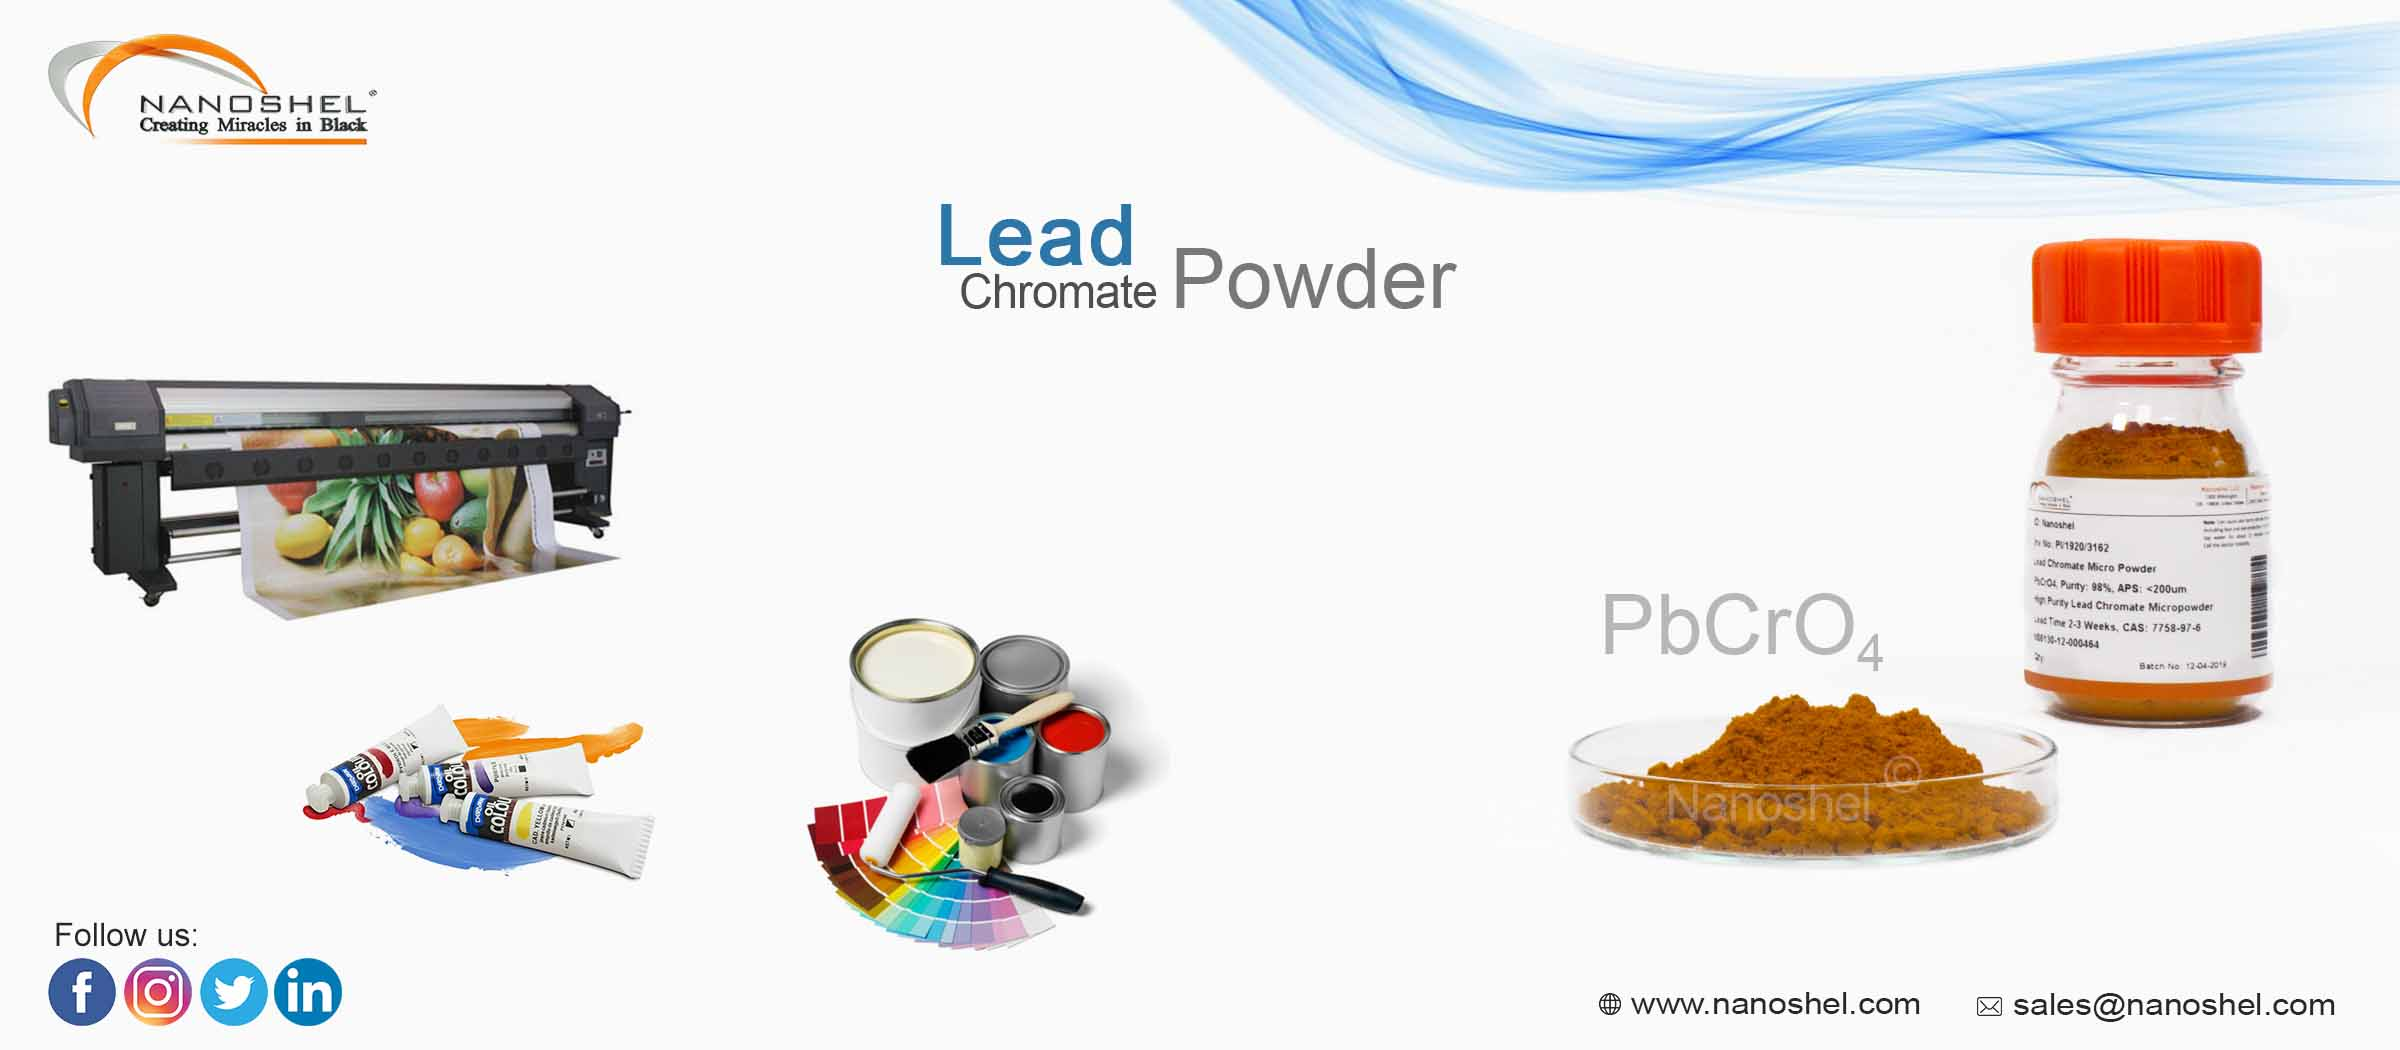 Lead Chromate Powder